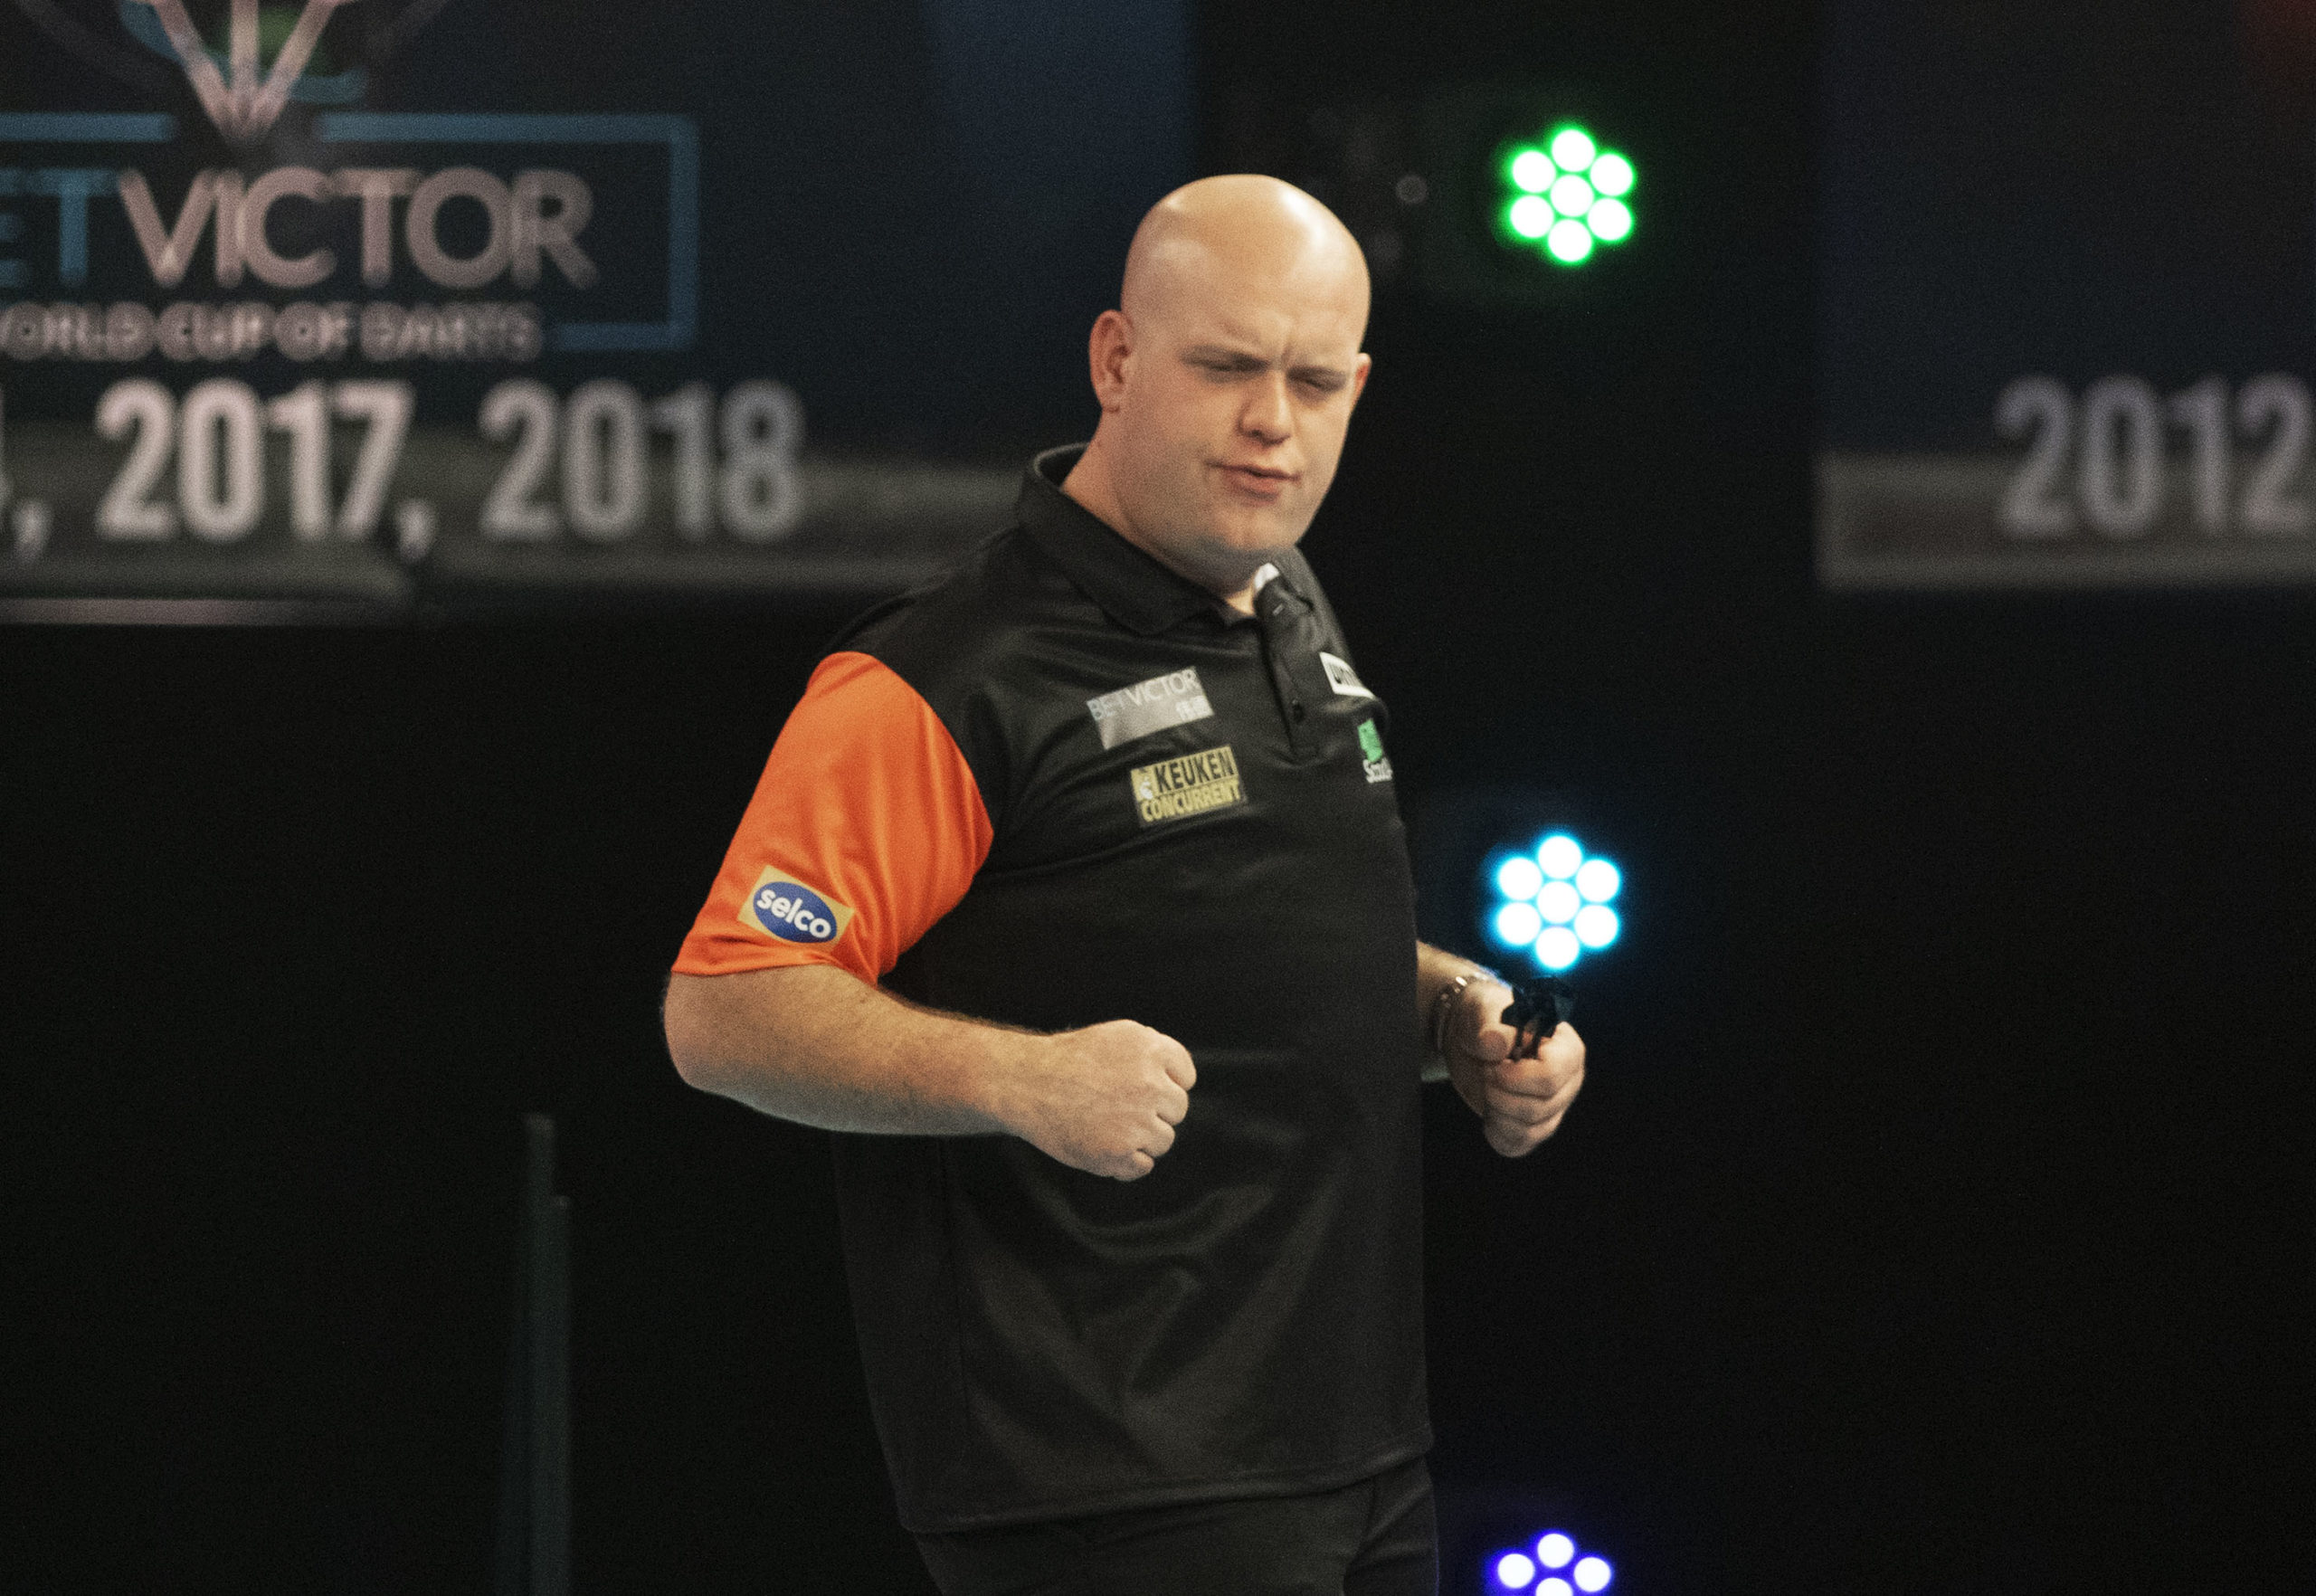 Michael van Gerwen has a recurrence of a long-standing back problem